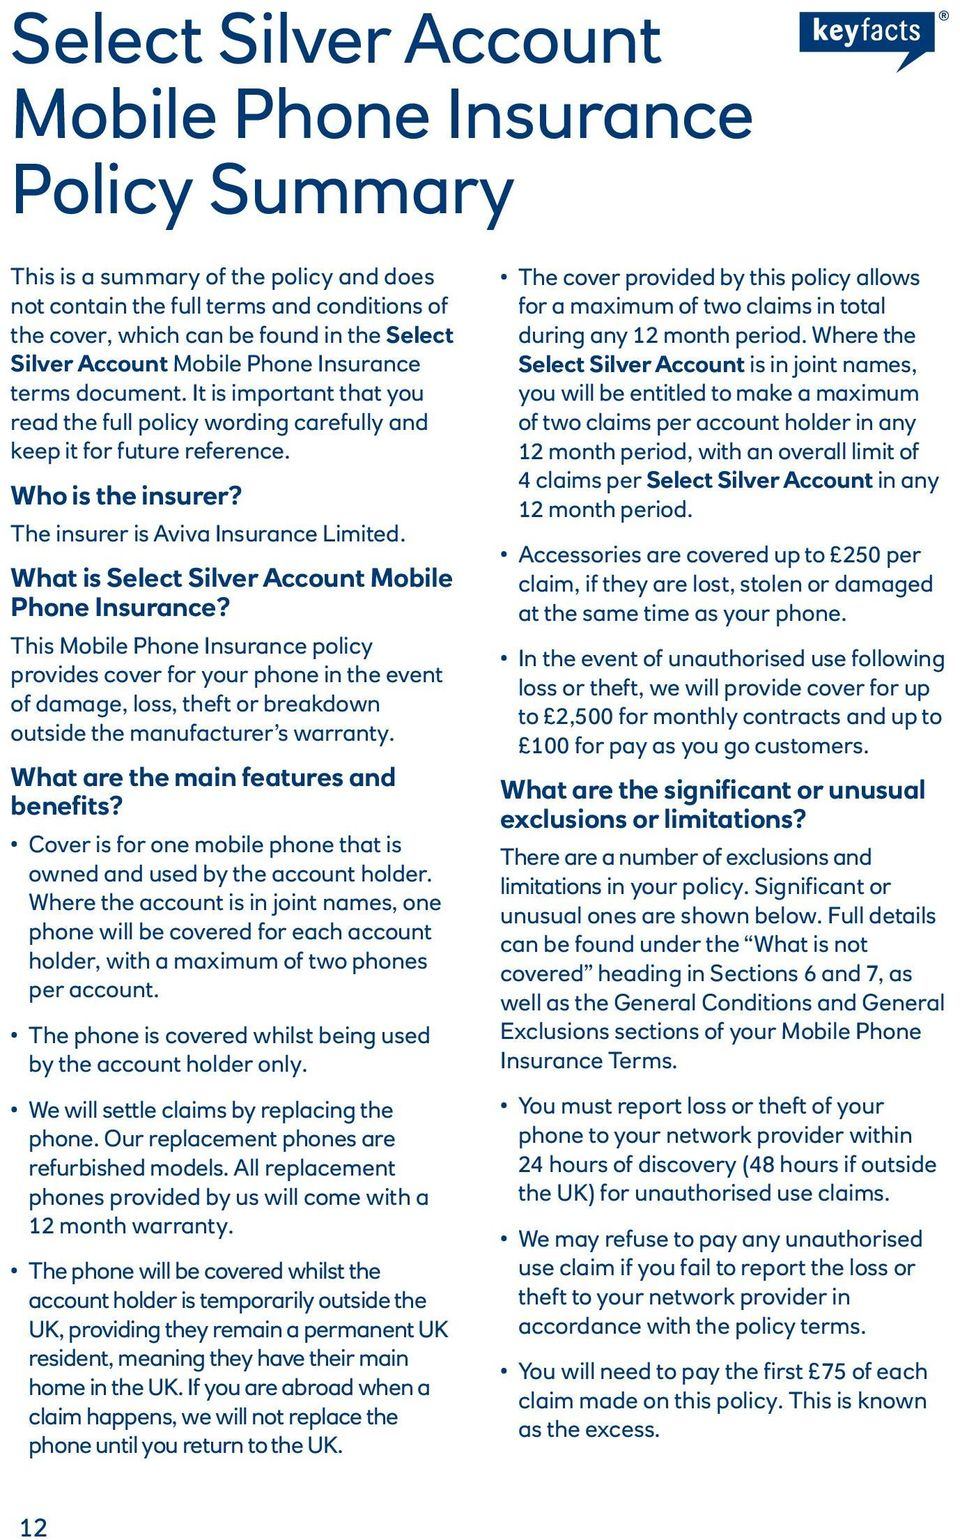 The insurer is Aviva Insurance Limited. What is Select Silver Account Mobile Phone Insurance?